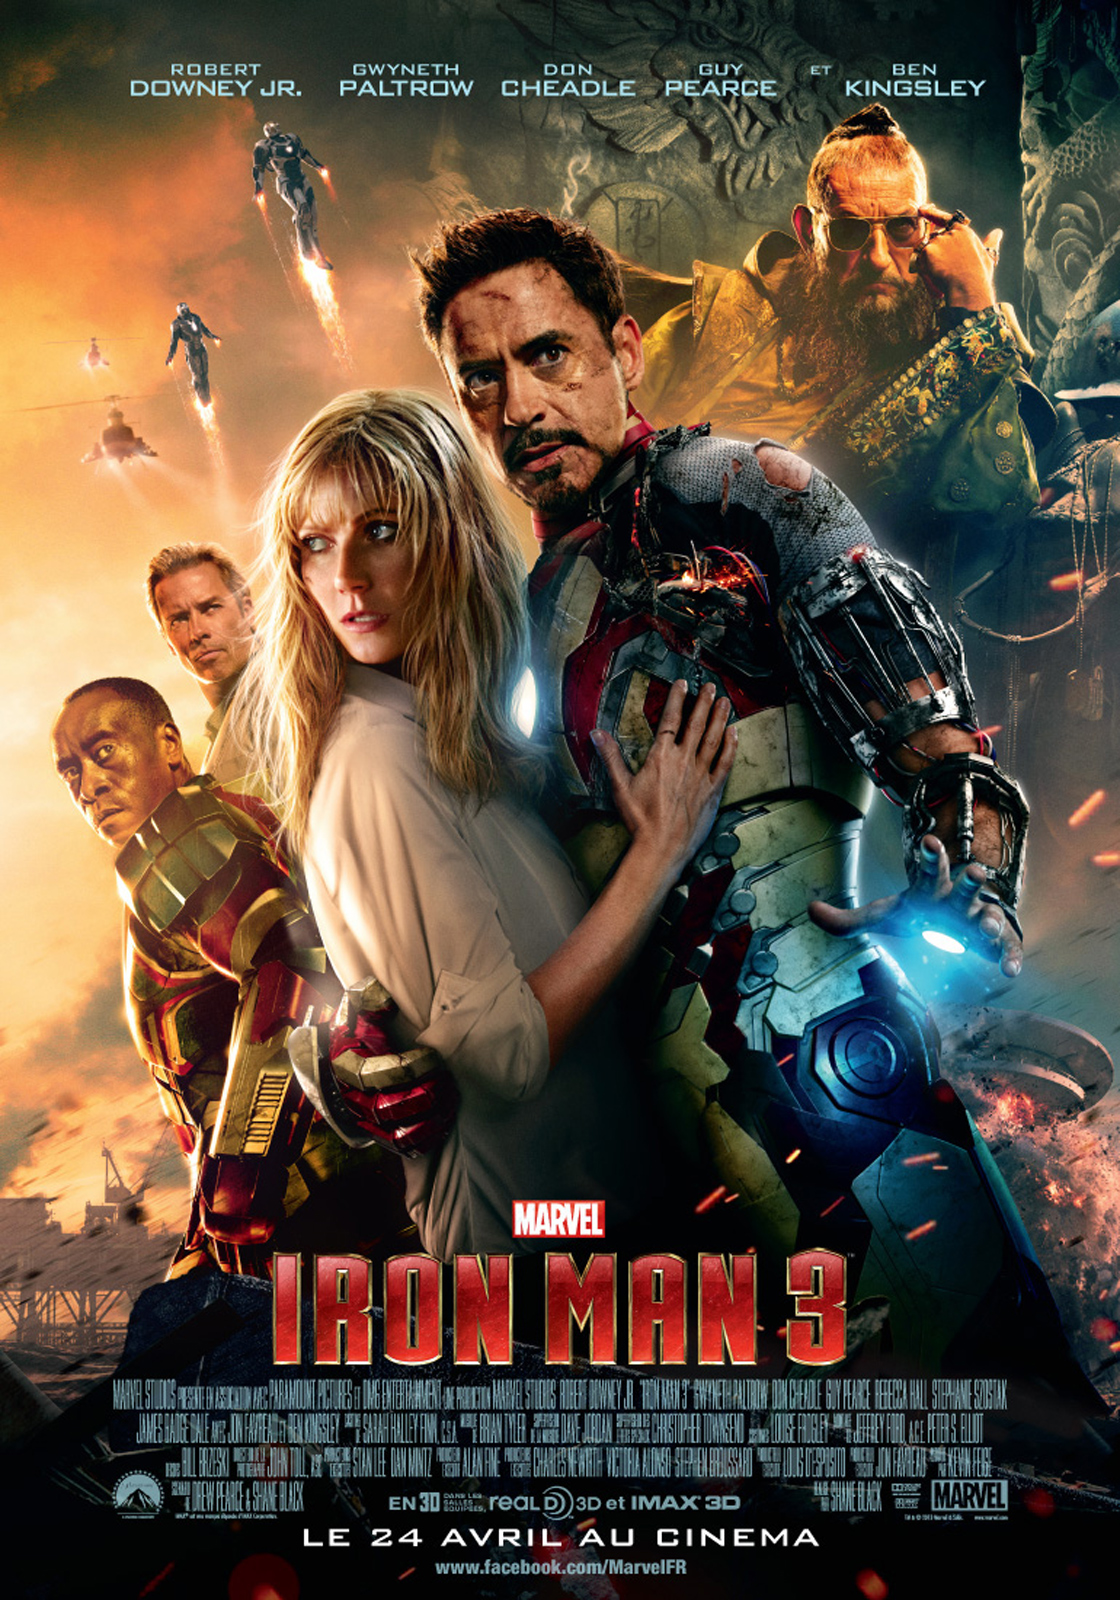 Iron Man 3 - EXTRAS (Bonus du film)